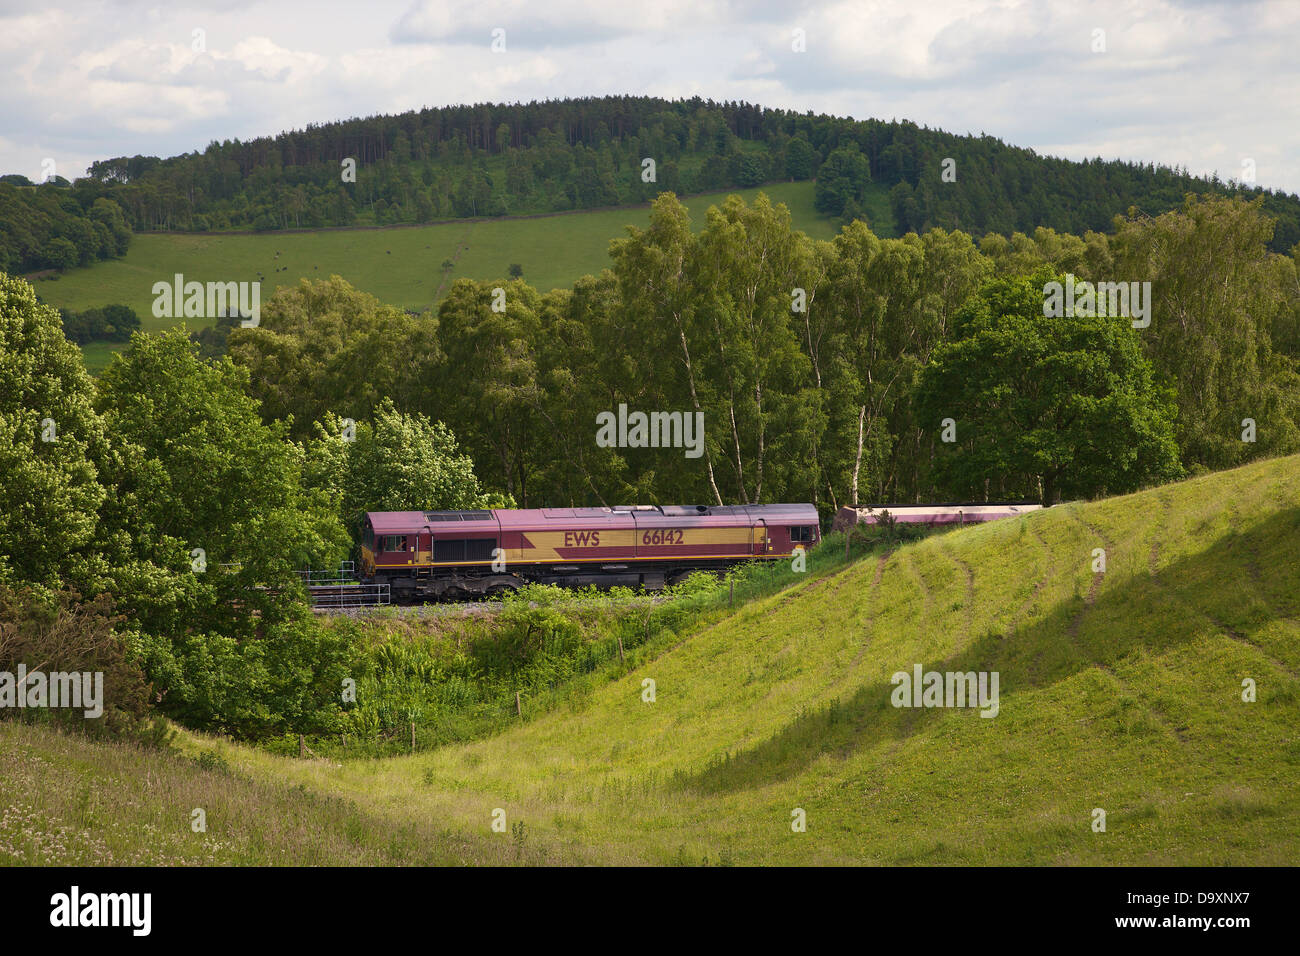 Rolling hills with trees and freight train Settle to Carlisle Line, Eden Valley, Cumbria, England, UK - Stock Image